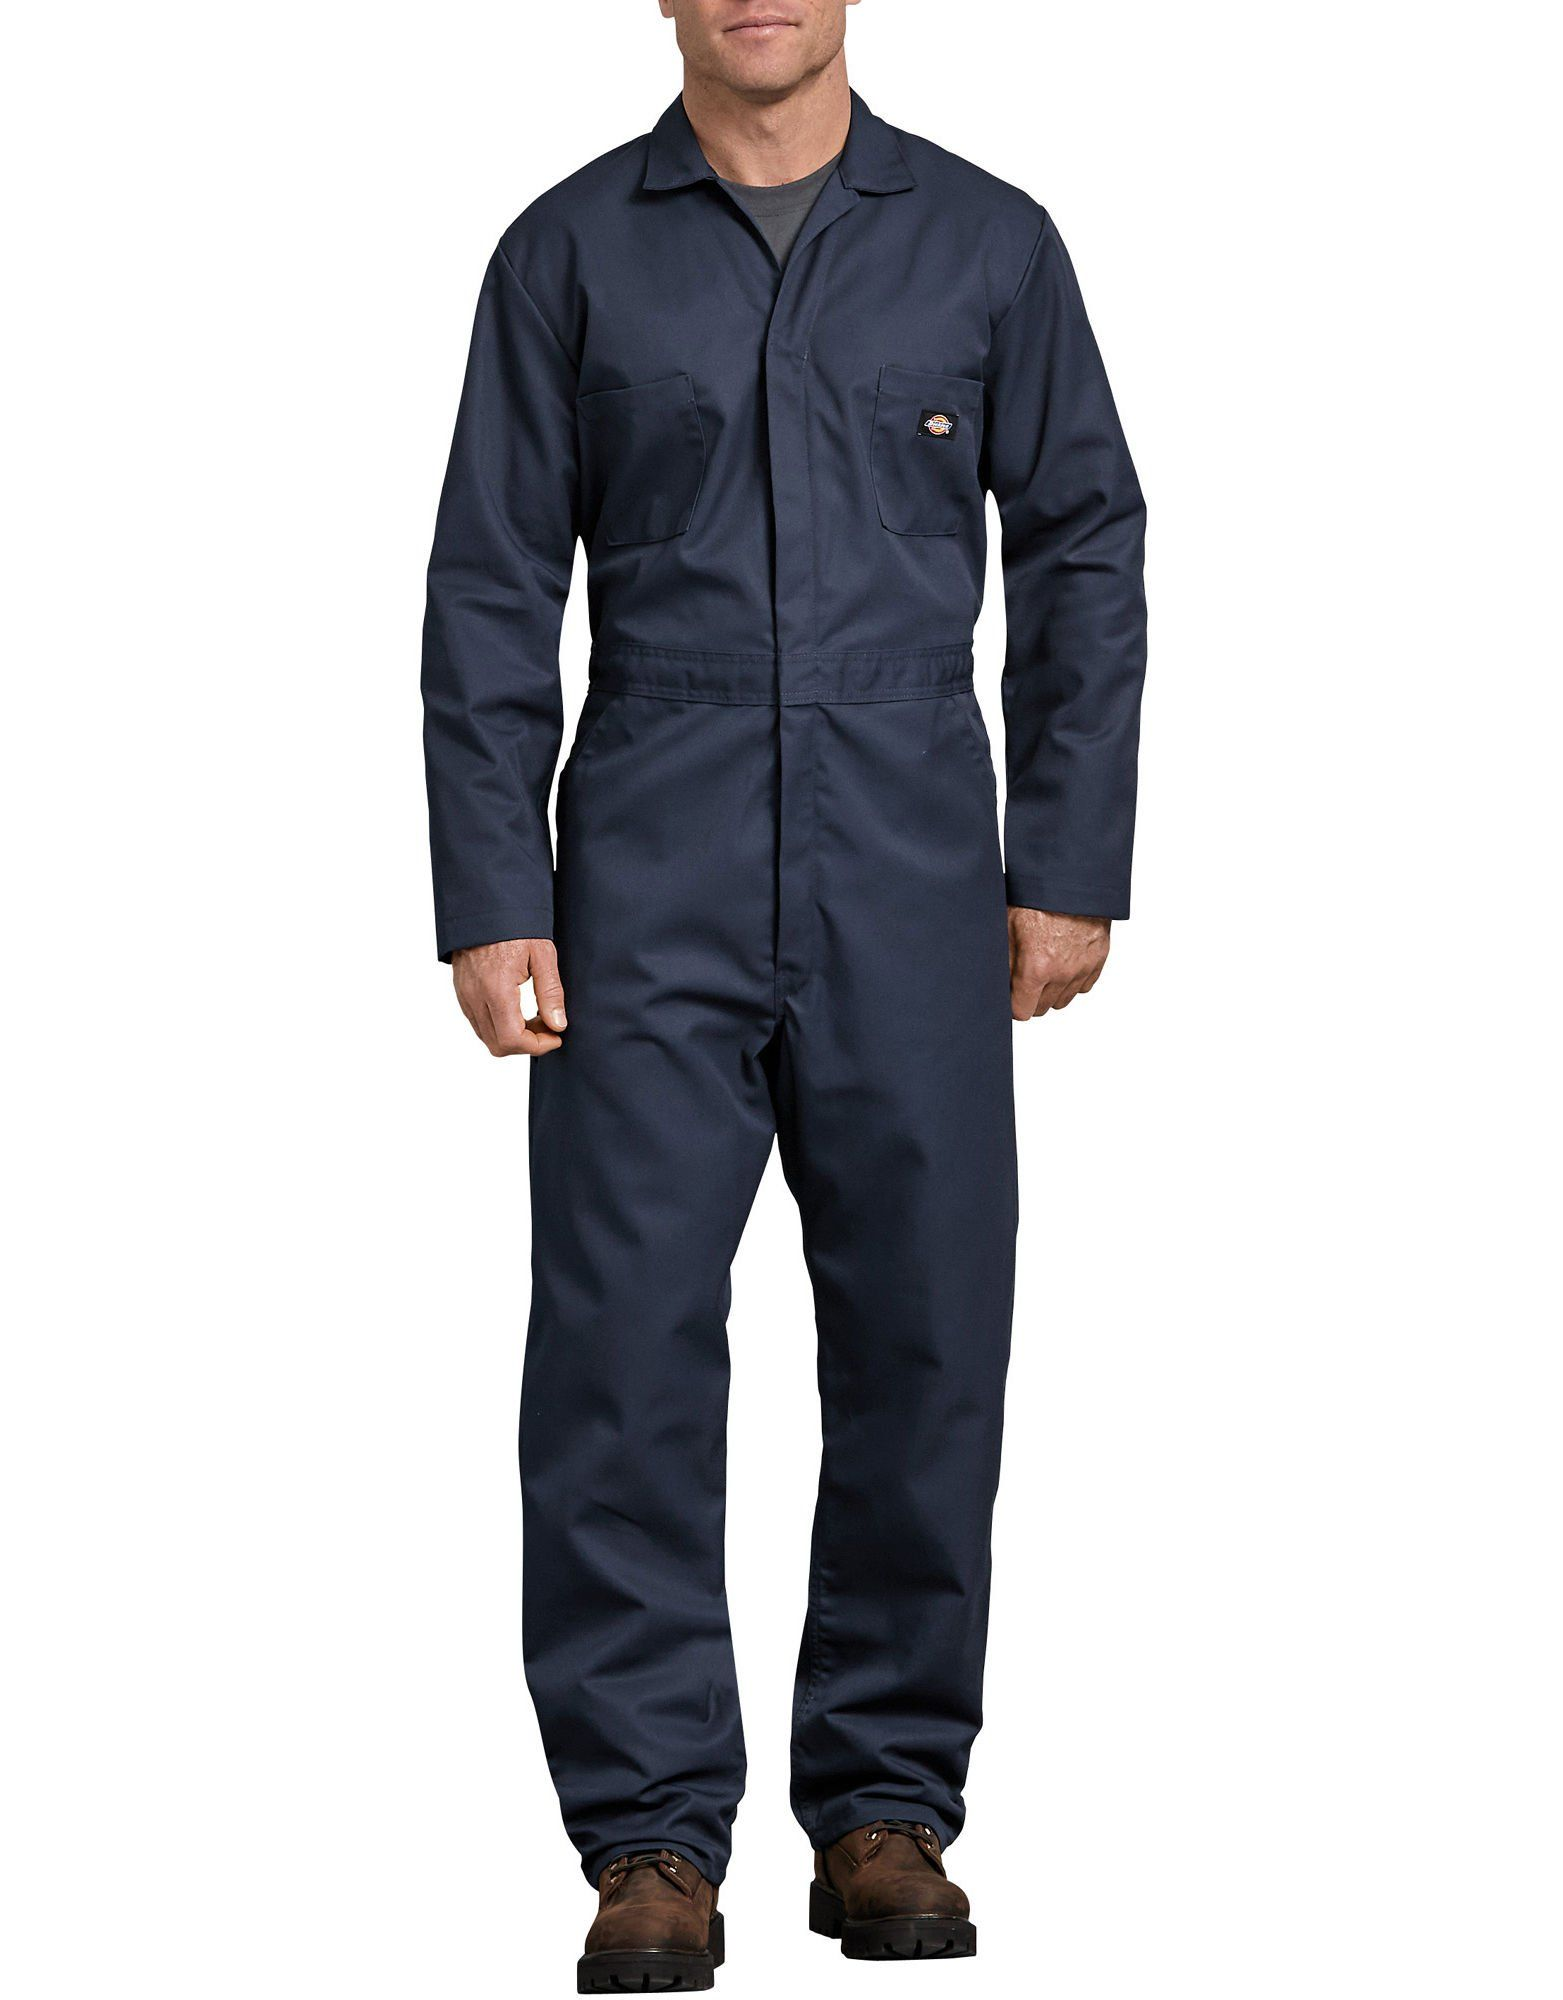 blended long sleeve coveralls dark navy in 2020 mens on best insulated coveralls for men id=56678